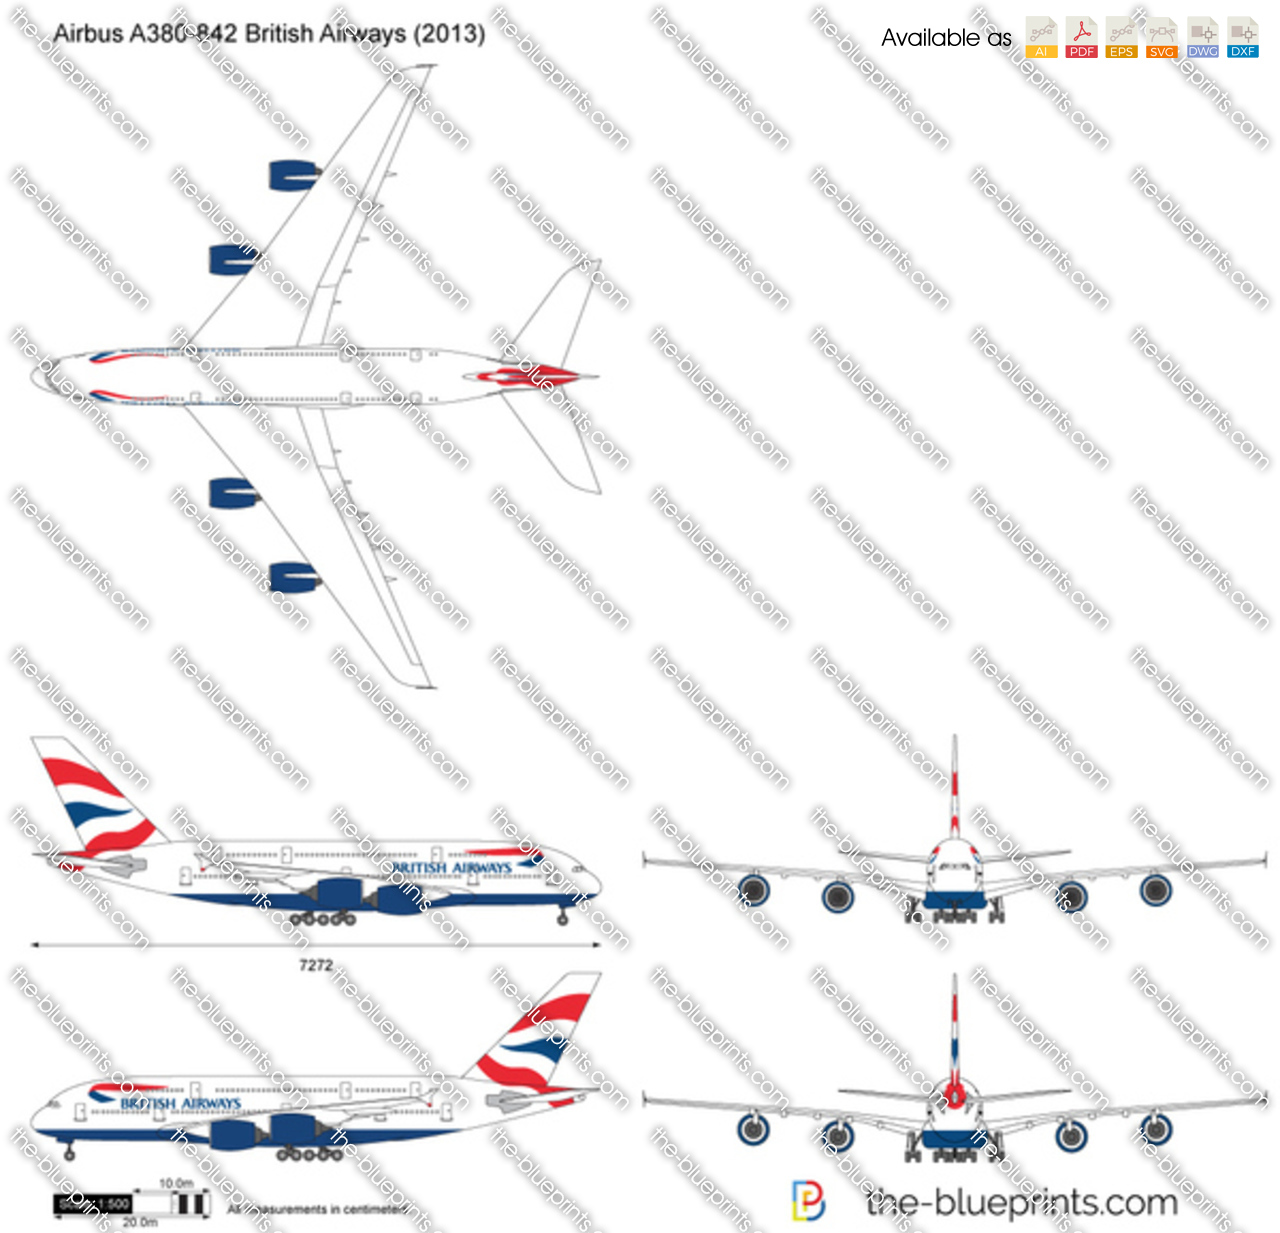 2018 Airbus A380-842 British Airways